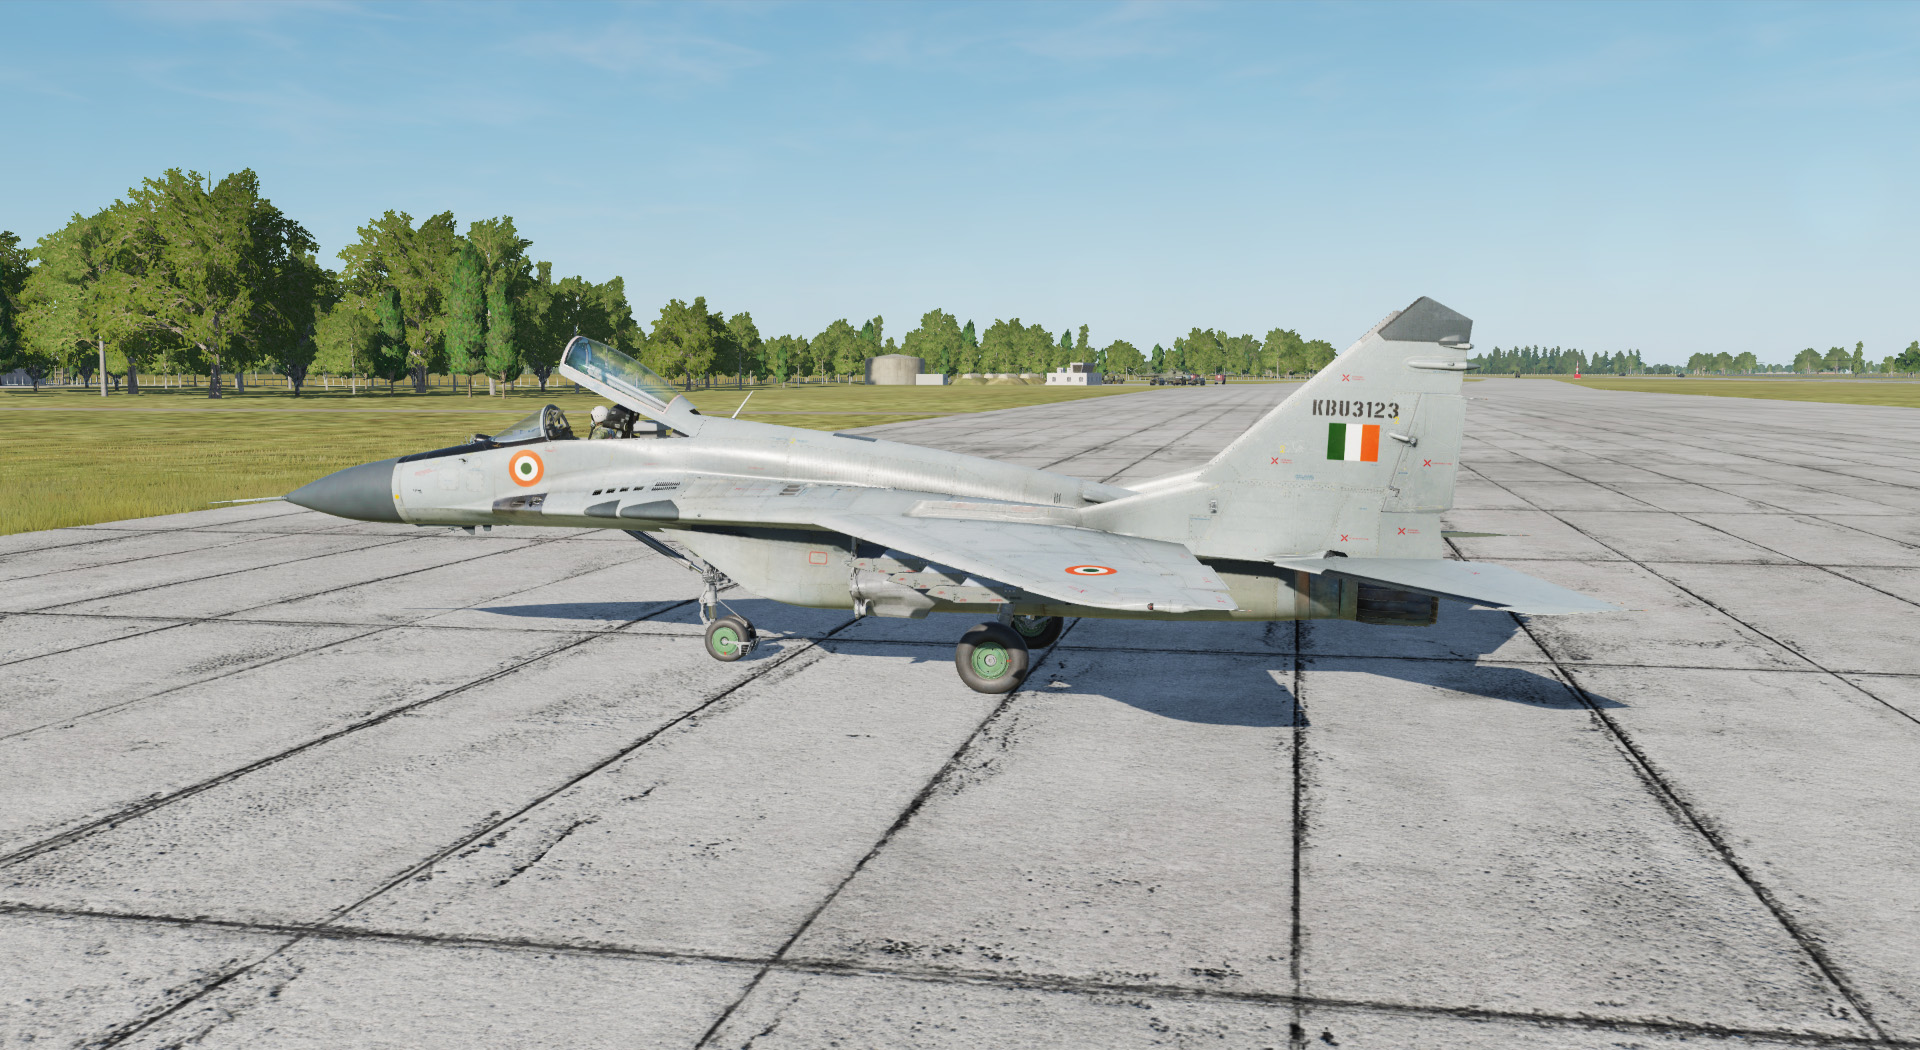 MiG-29s Basic Gray Skin for Indian Air Force